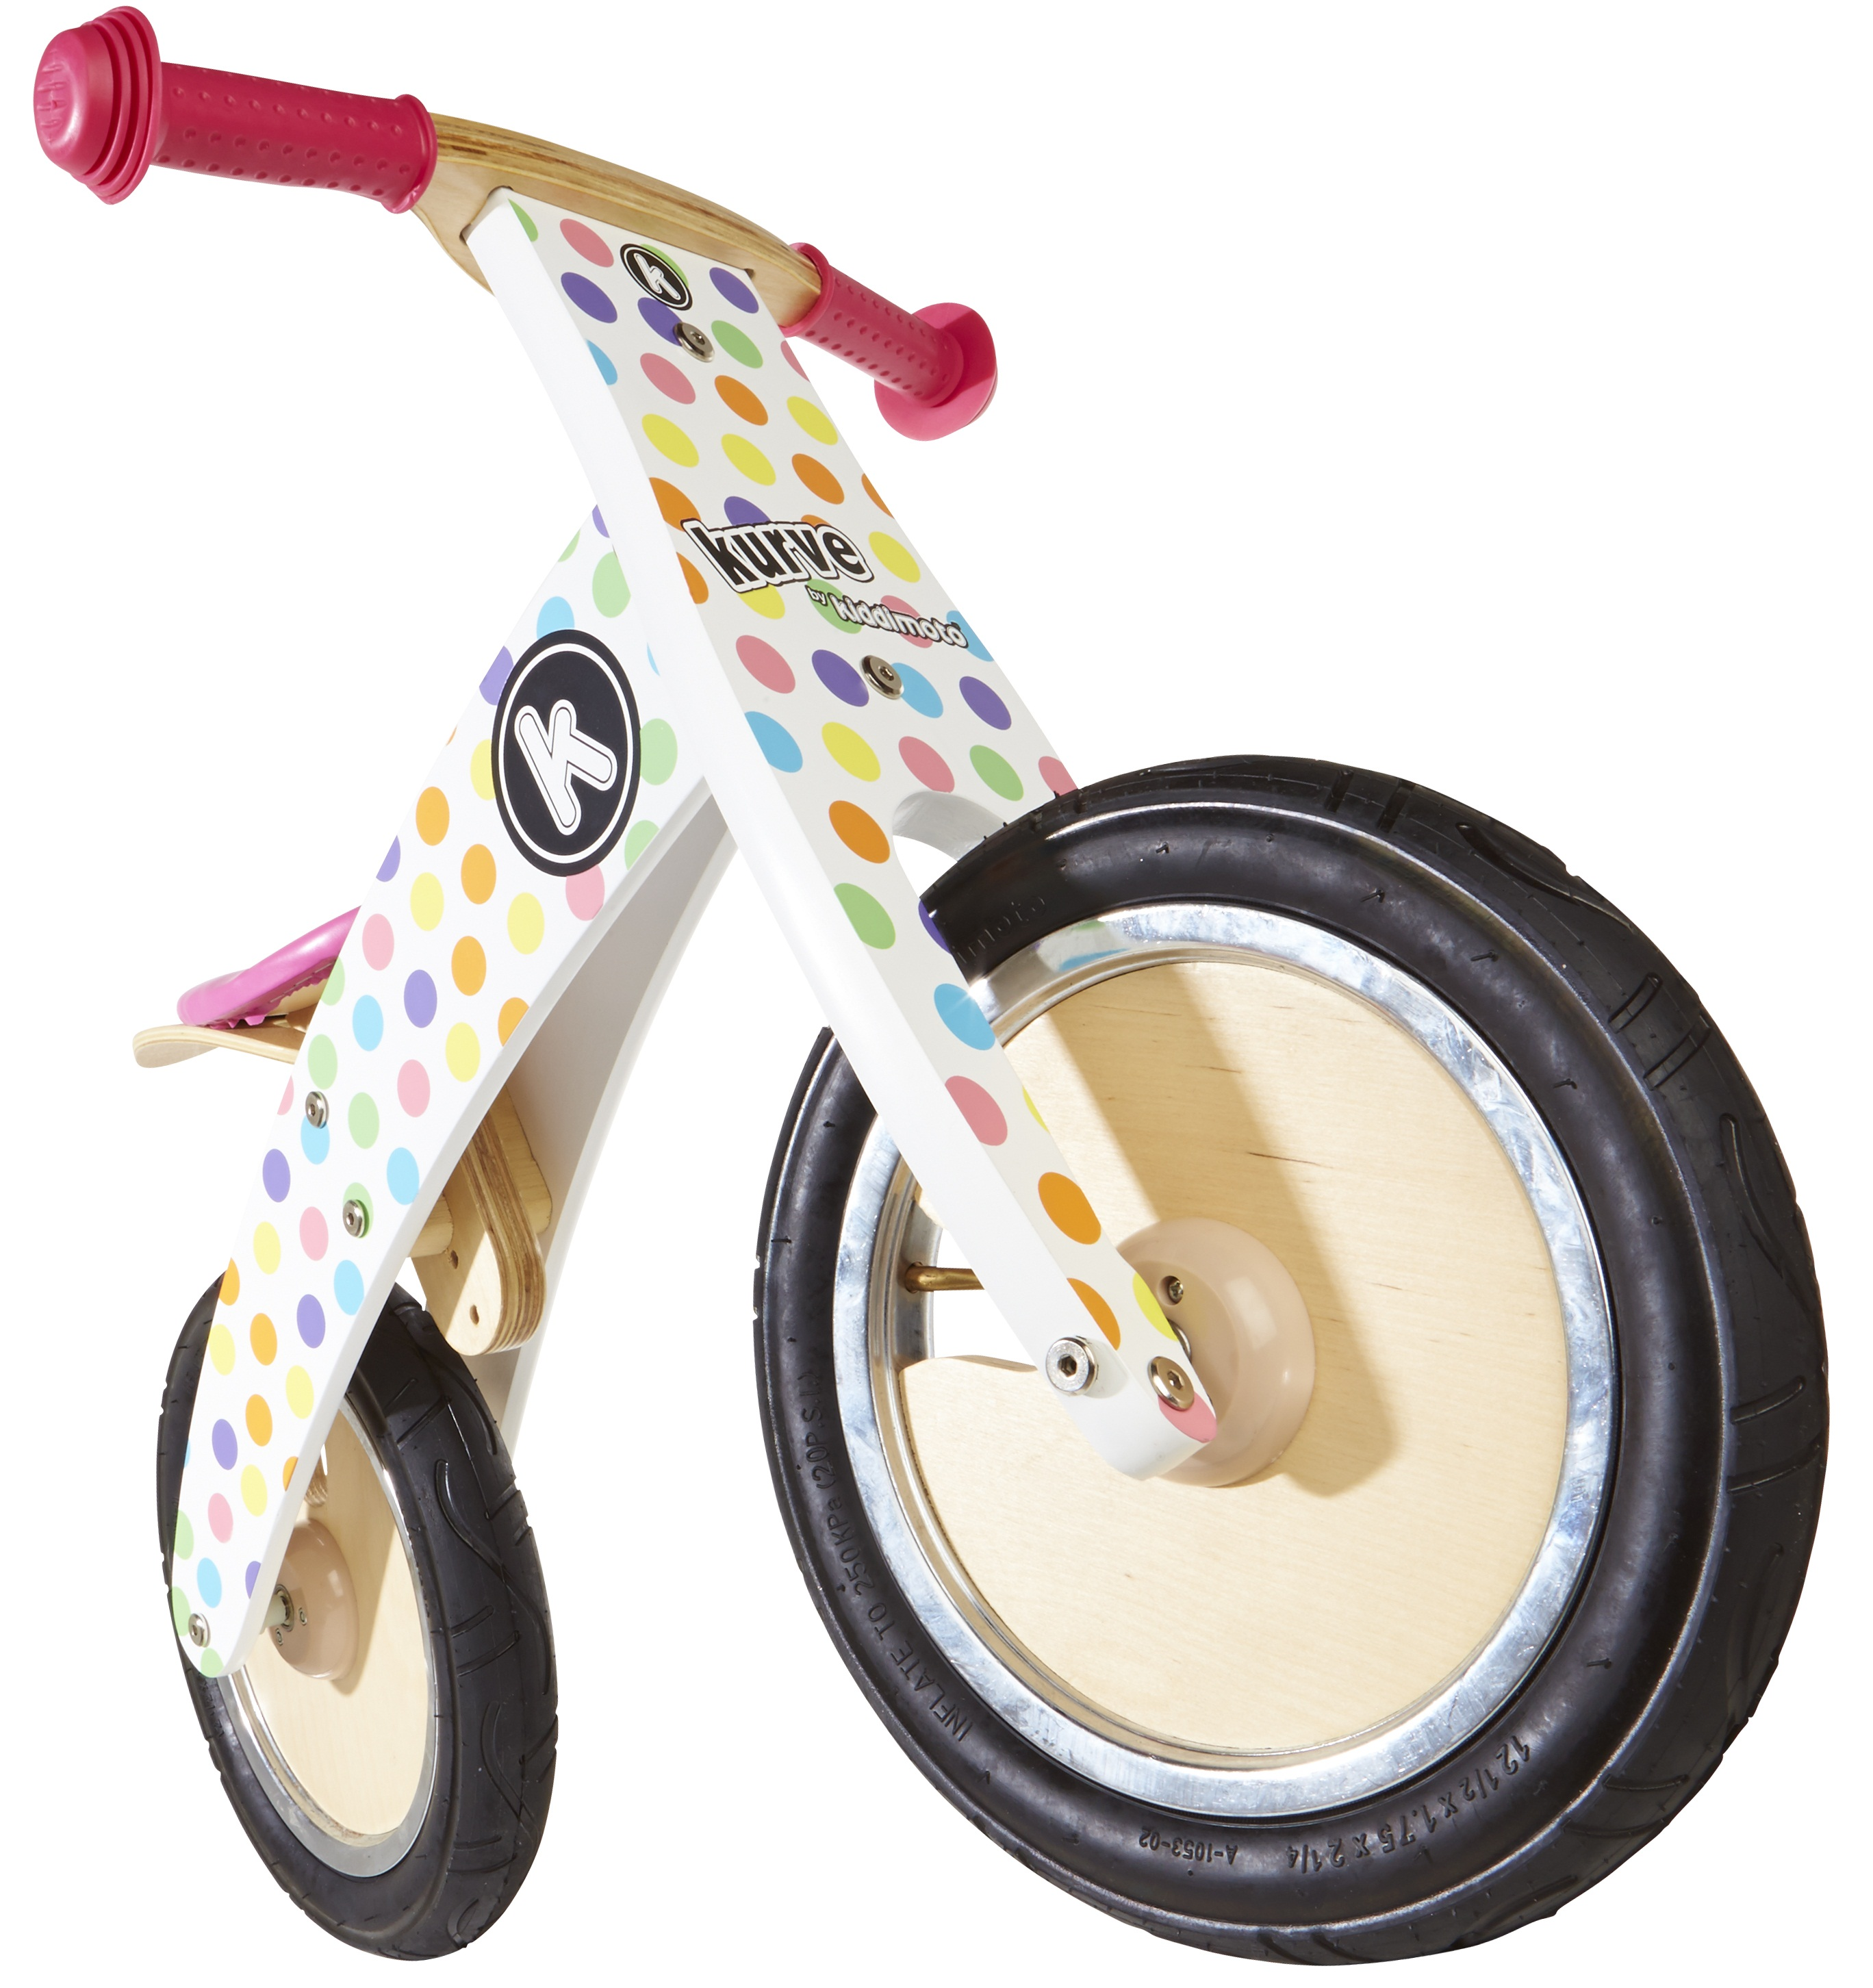 Kurve Pastel Dotty, £64.99 www.kiddimoto.co.uk